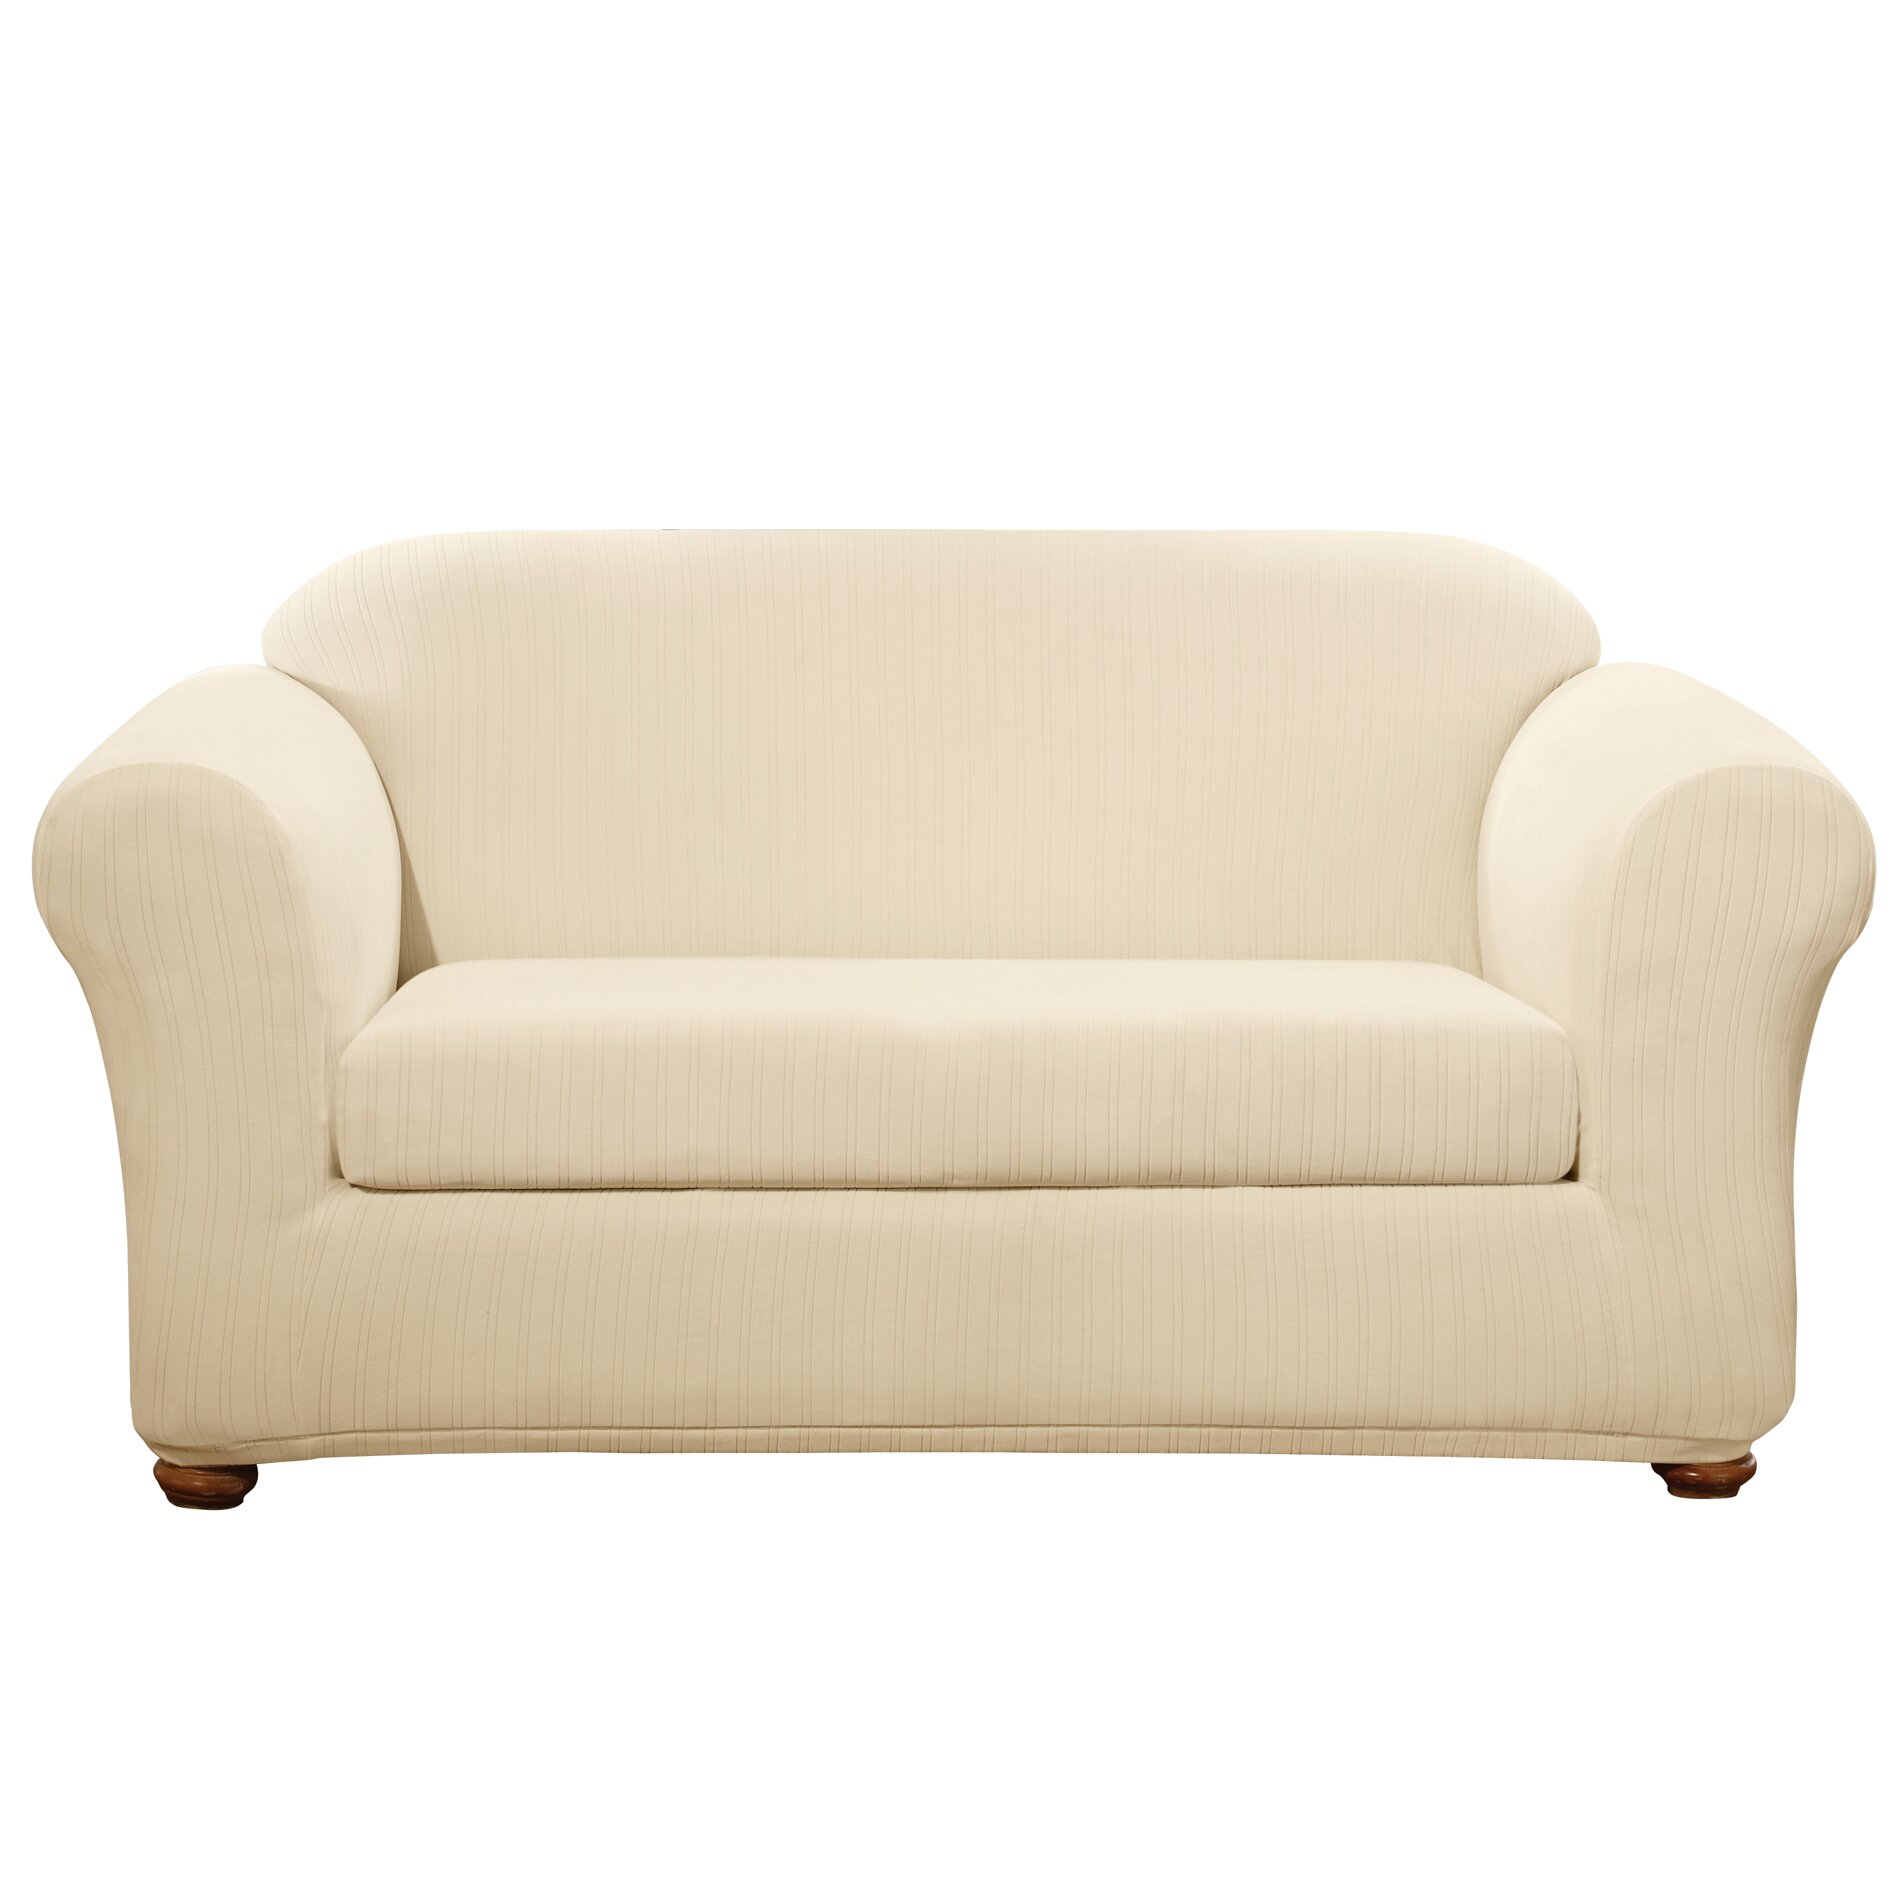 Sure fit stretch pinstripe loveseat slipcover reviews wayfair Loveseat stretch slipcovers